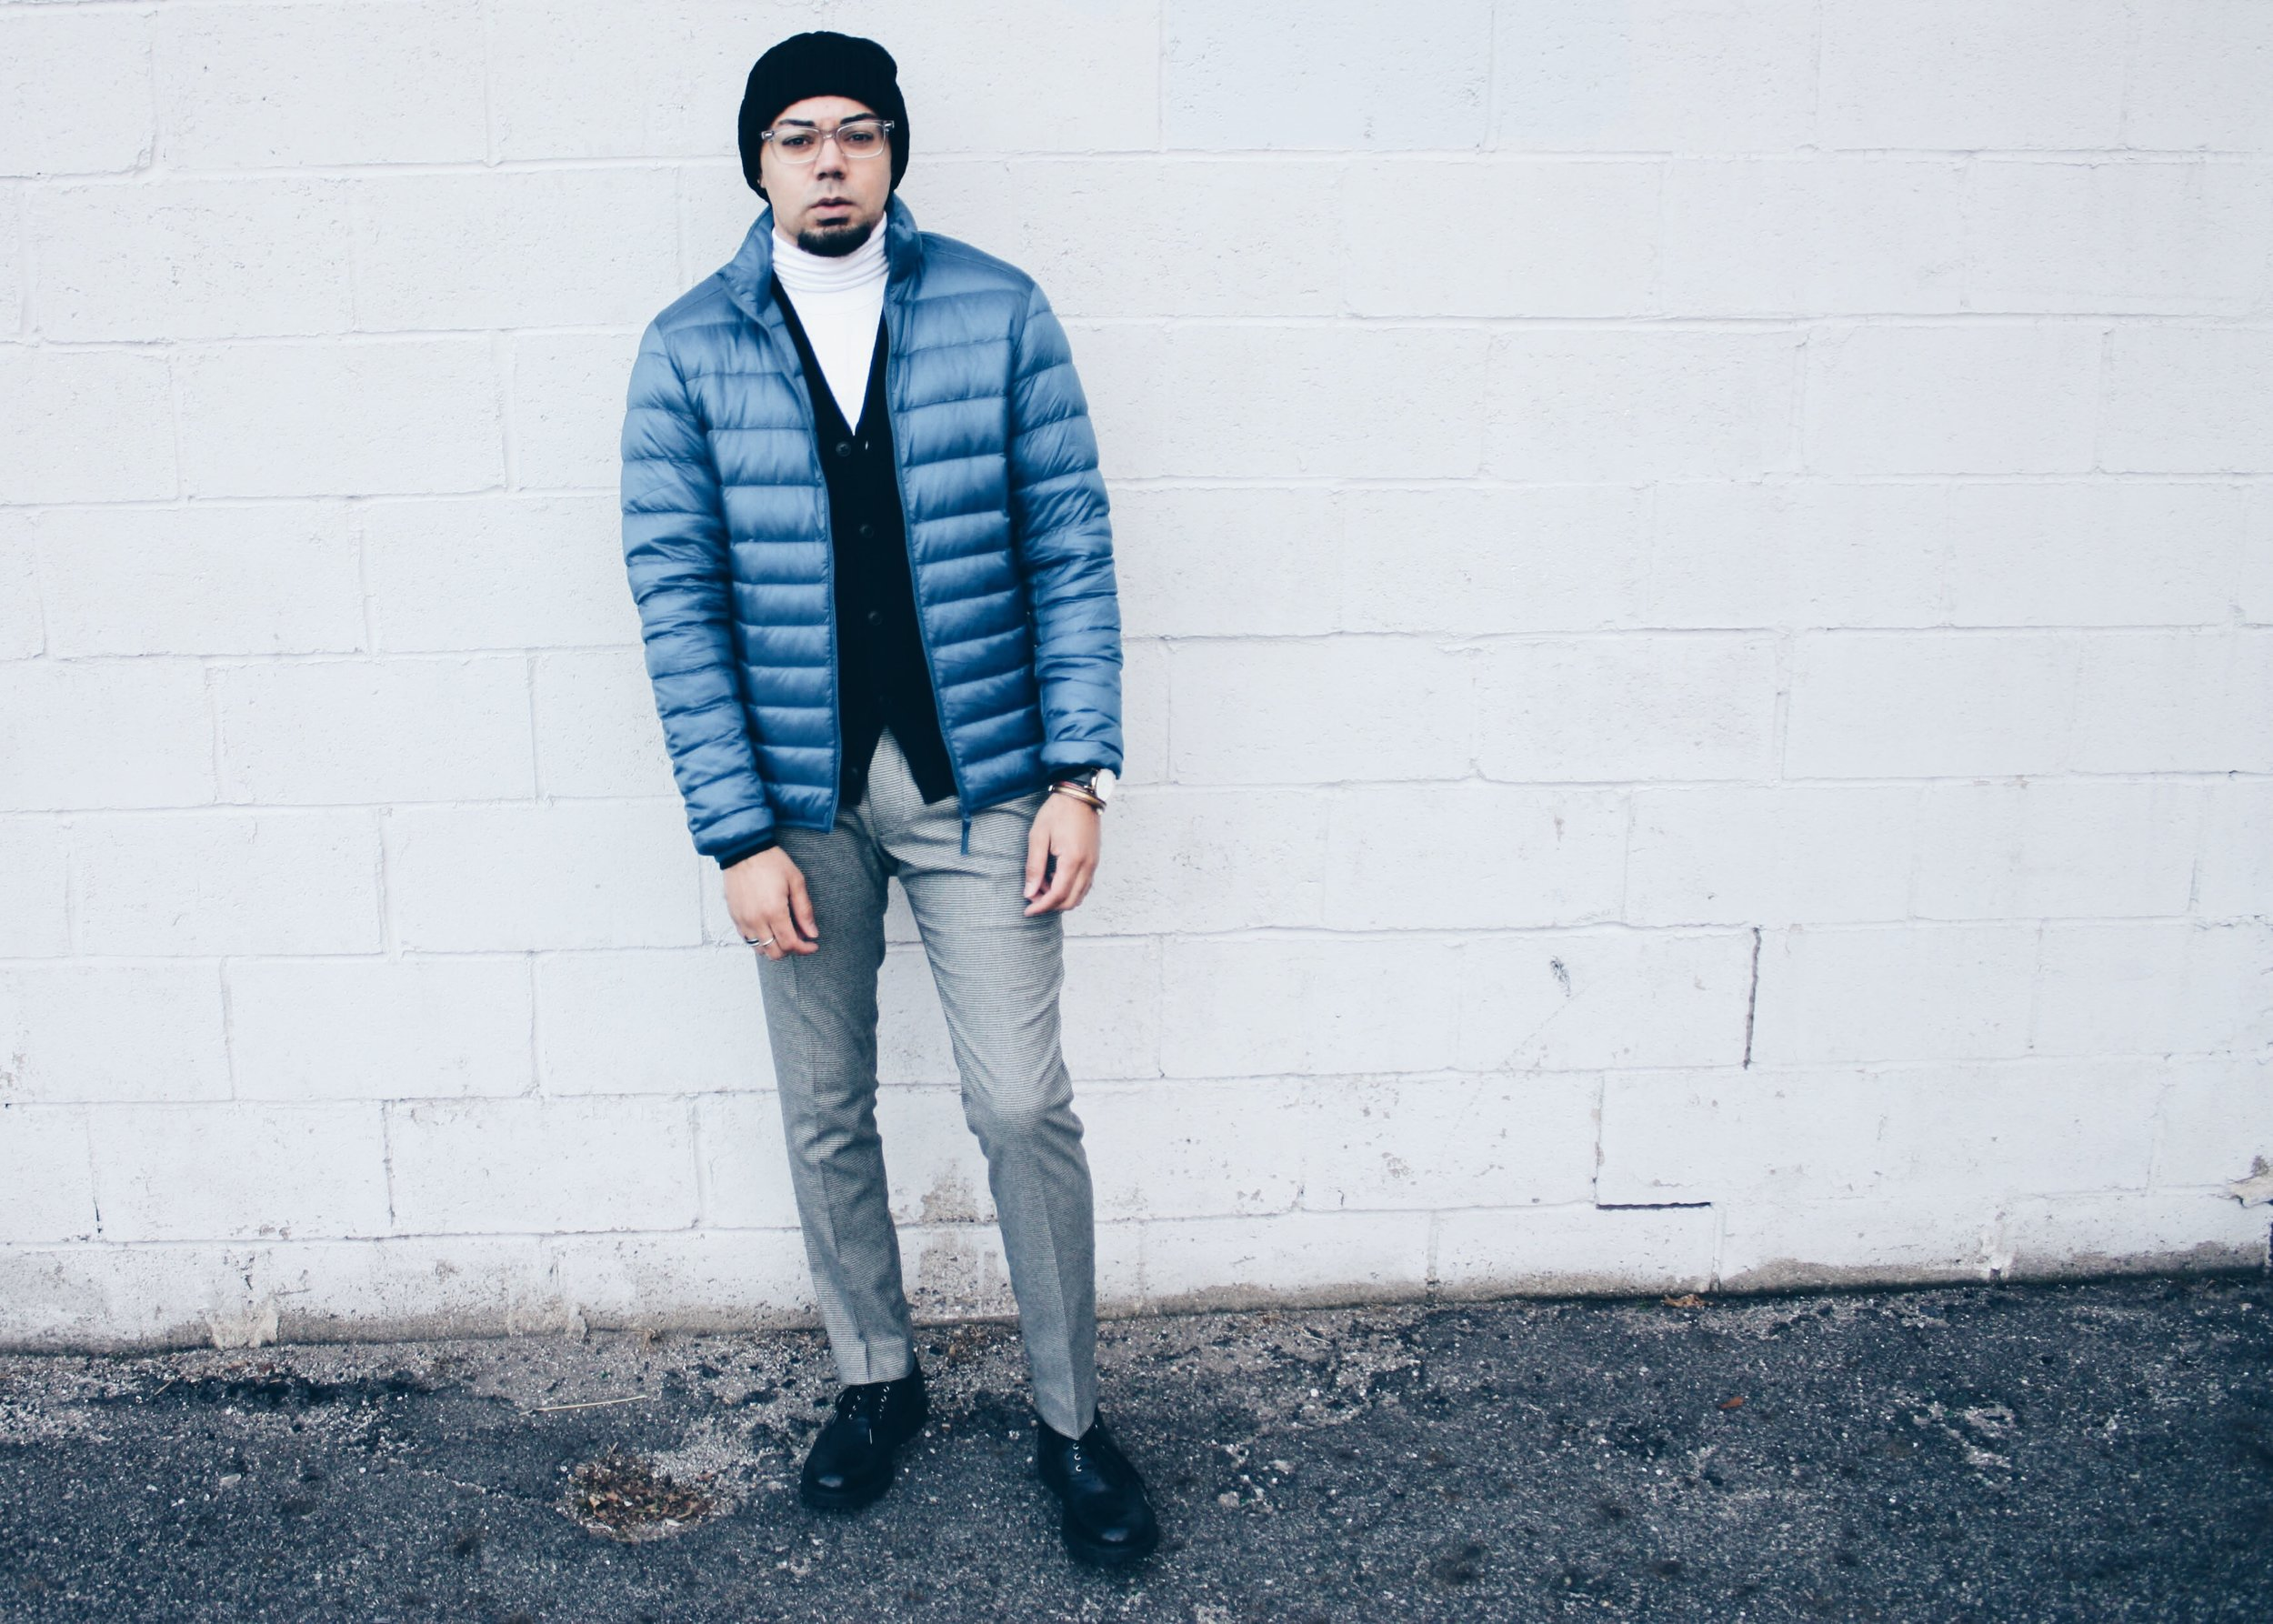 sam-c-perry-uniqlo-heattech-smart-holiday-looks-with-uniqlo-full-look.jpg